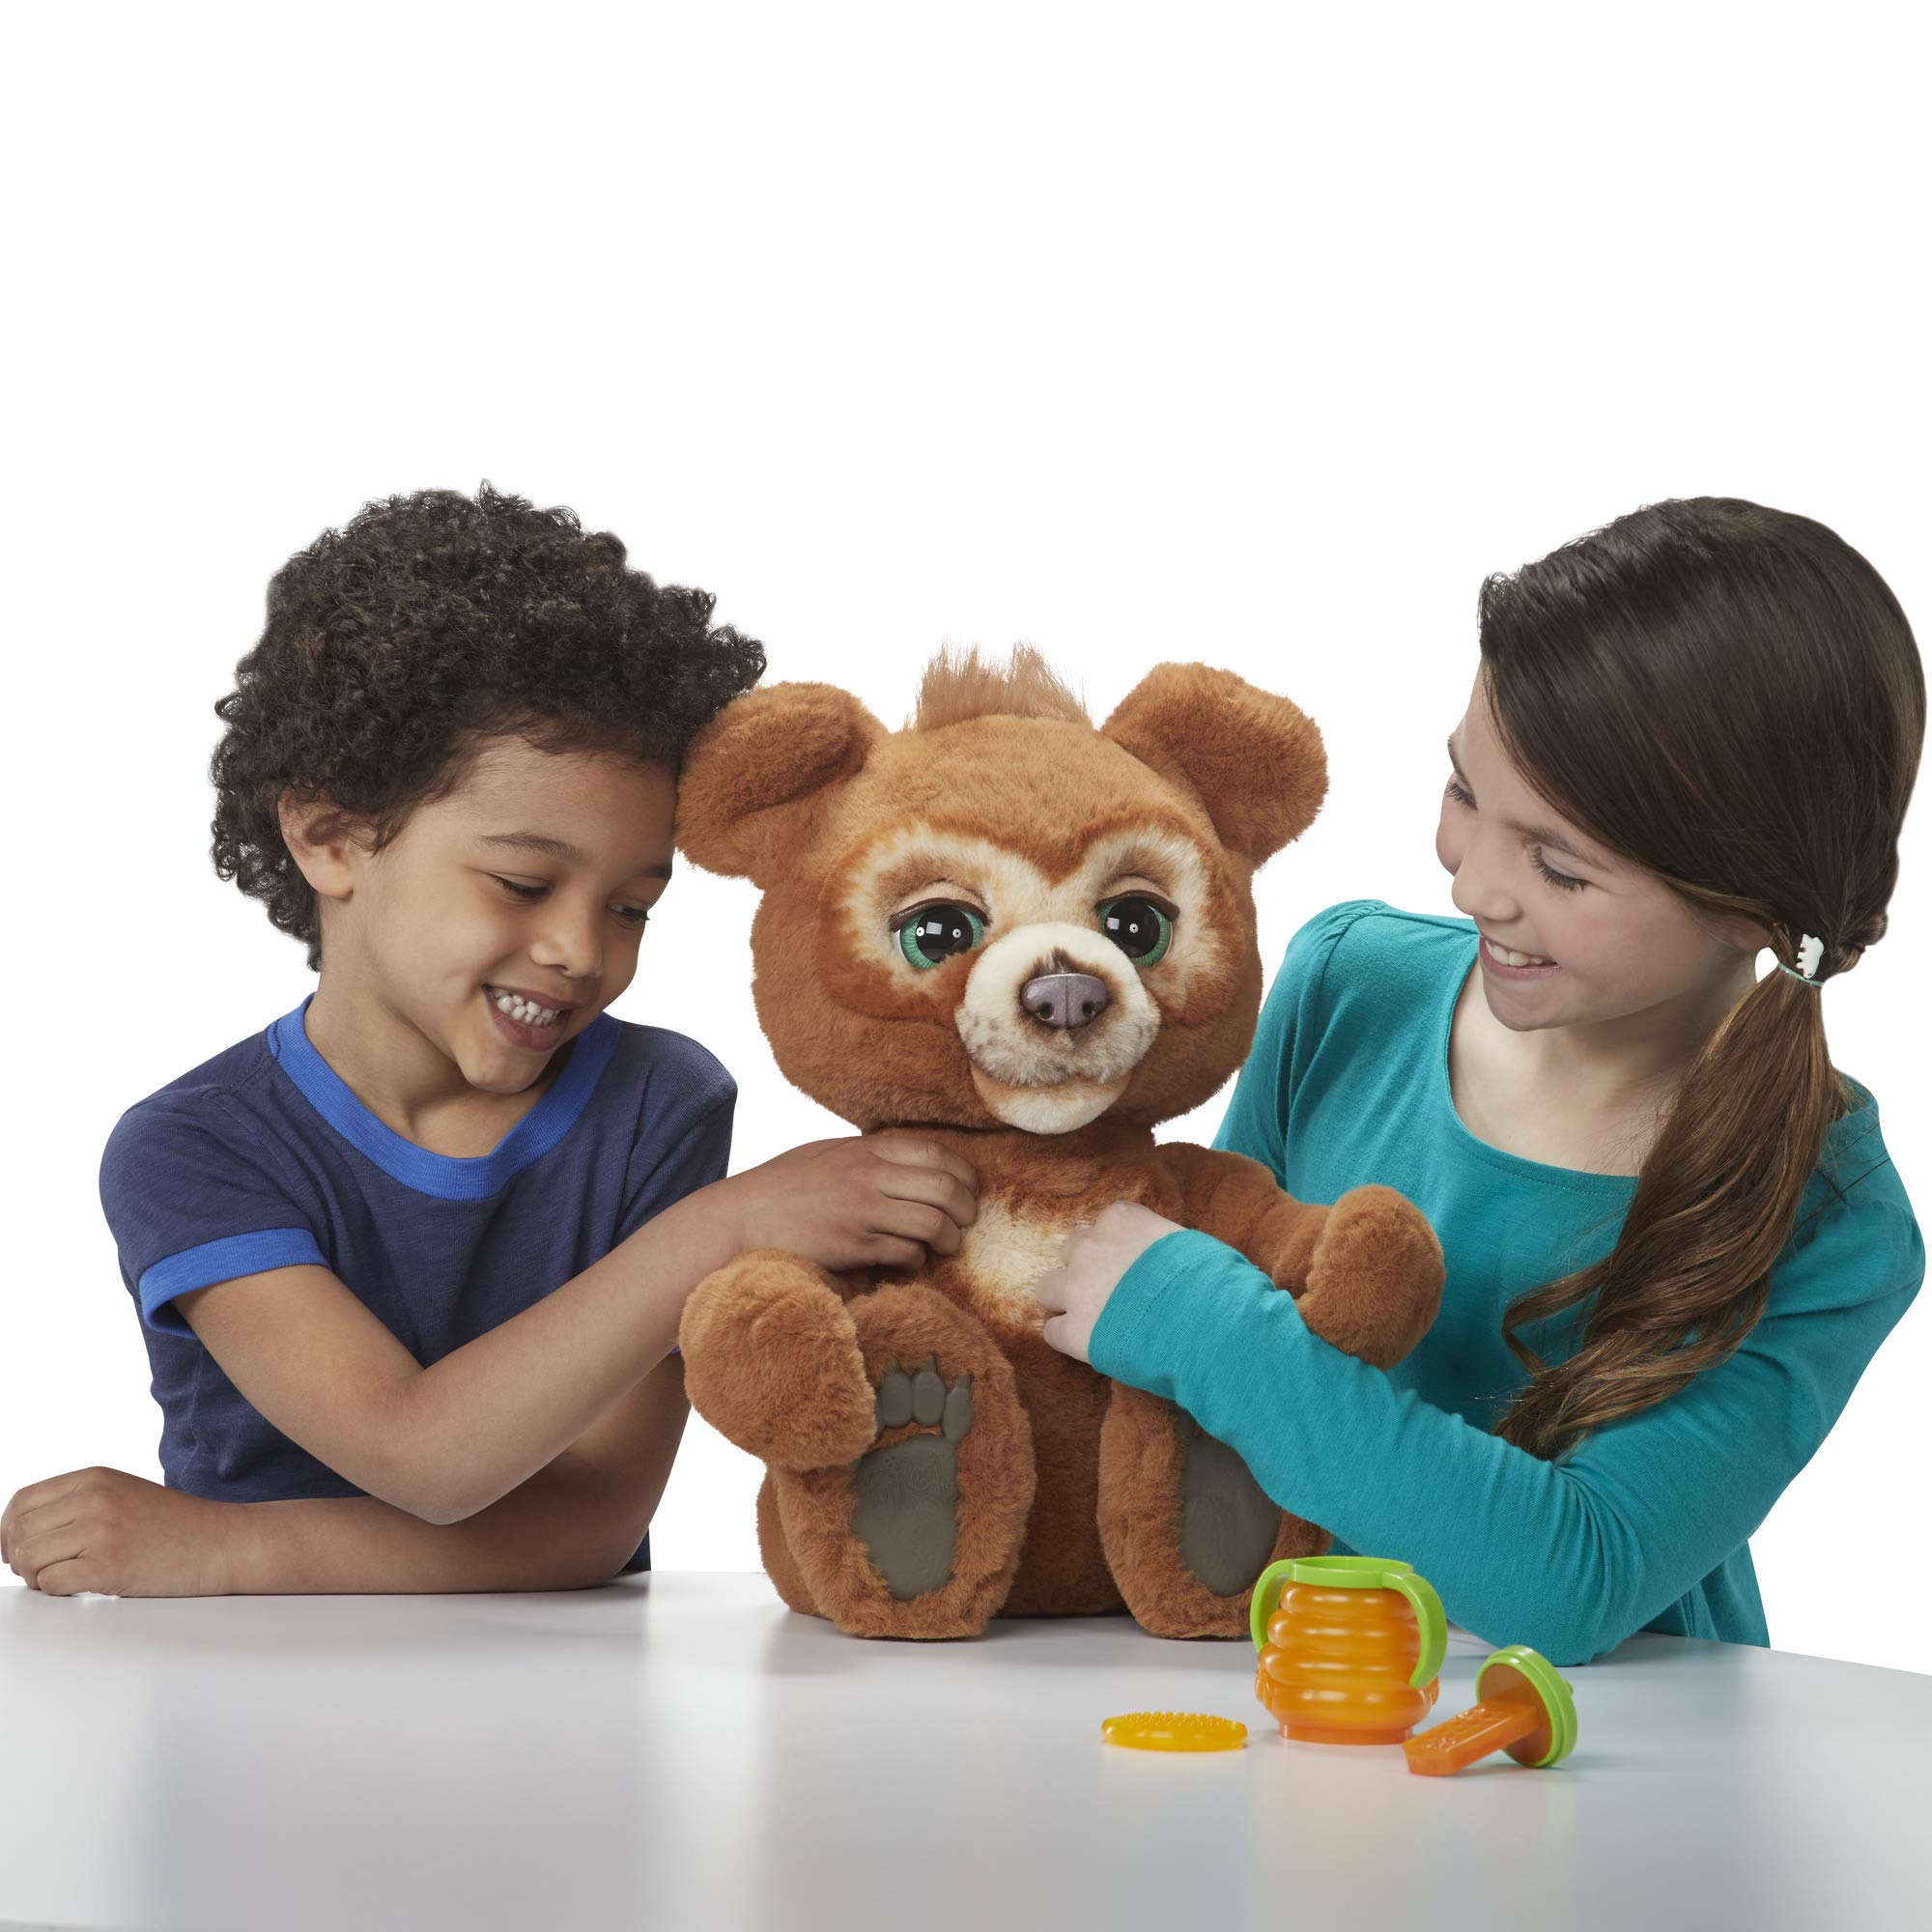 FurReal Cubby, The Curious Bear Interactive Plush Toy, Ages 4 and Up by FurReal (Image #13)